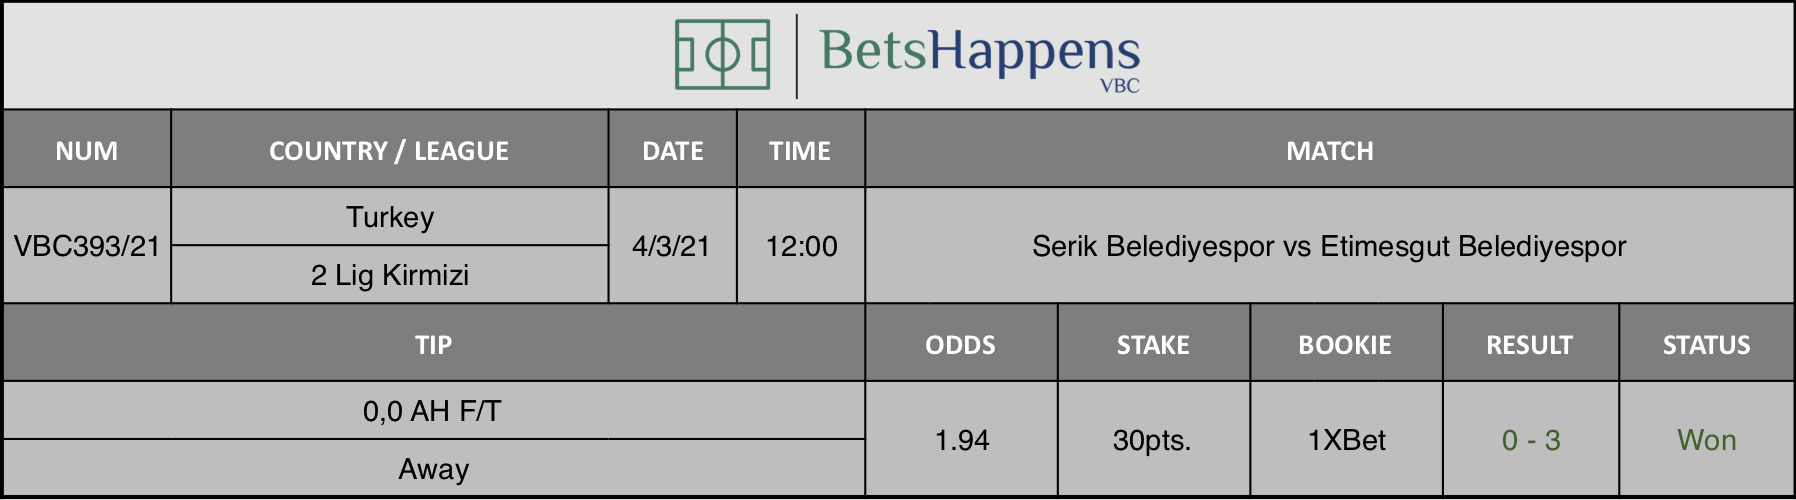 Results of our tip for the Serik Belediyespor vs Etimesgut Belediyespor match where 0,0 AH F/T  Away is recommended.